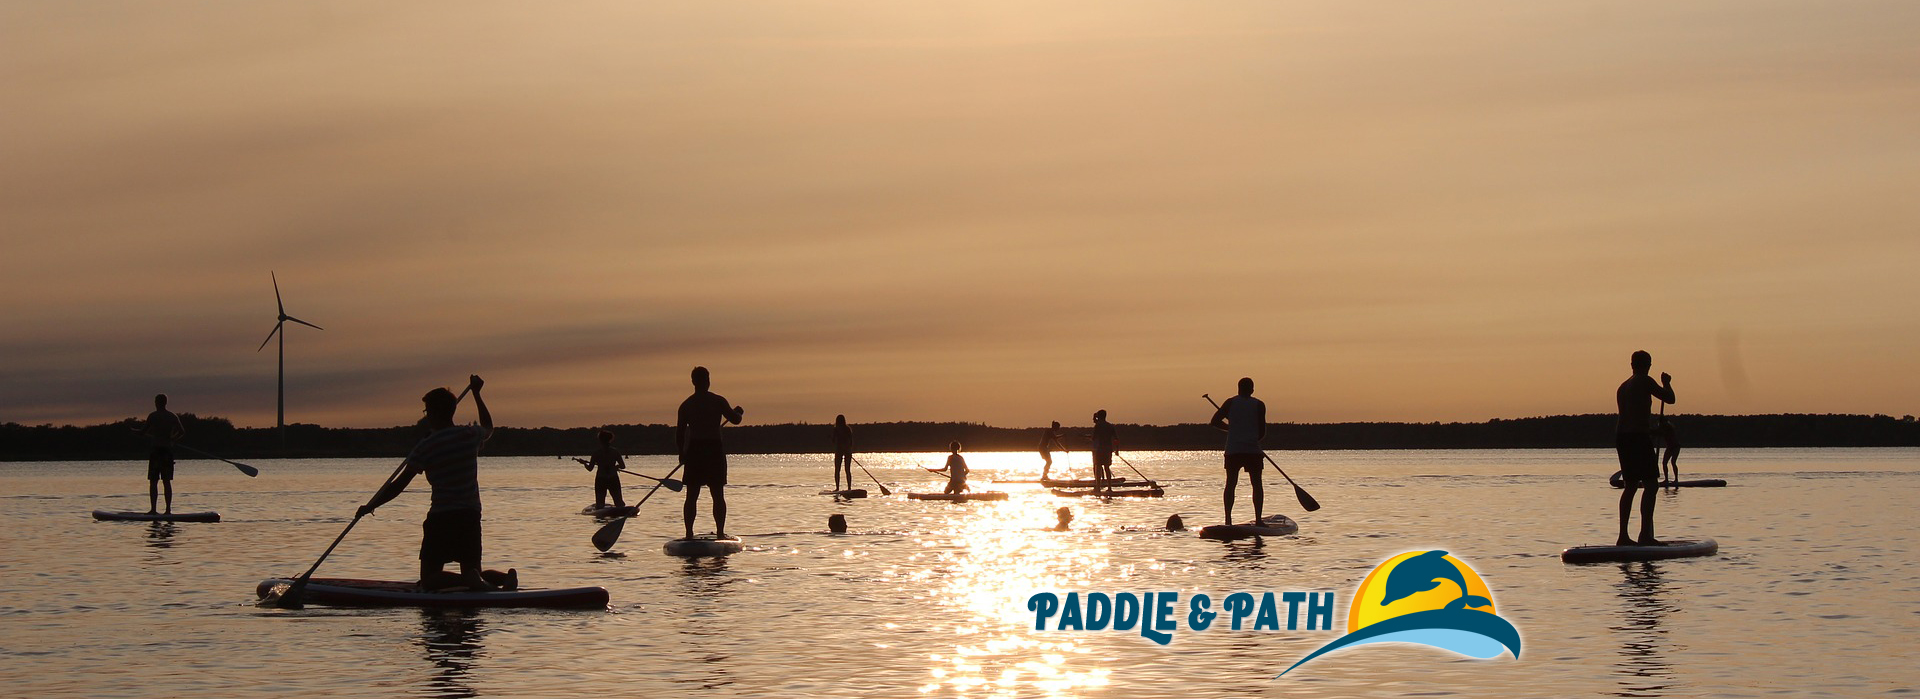 paddle and path - banner